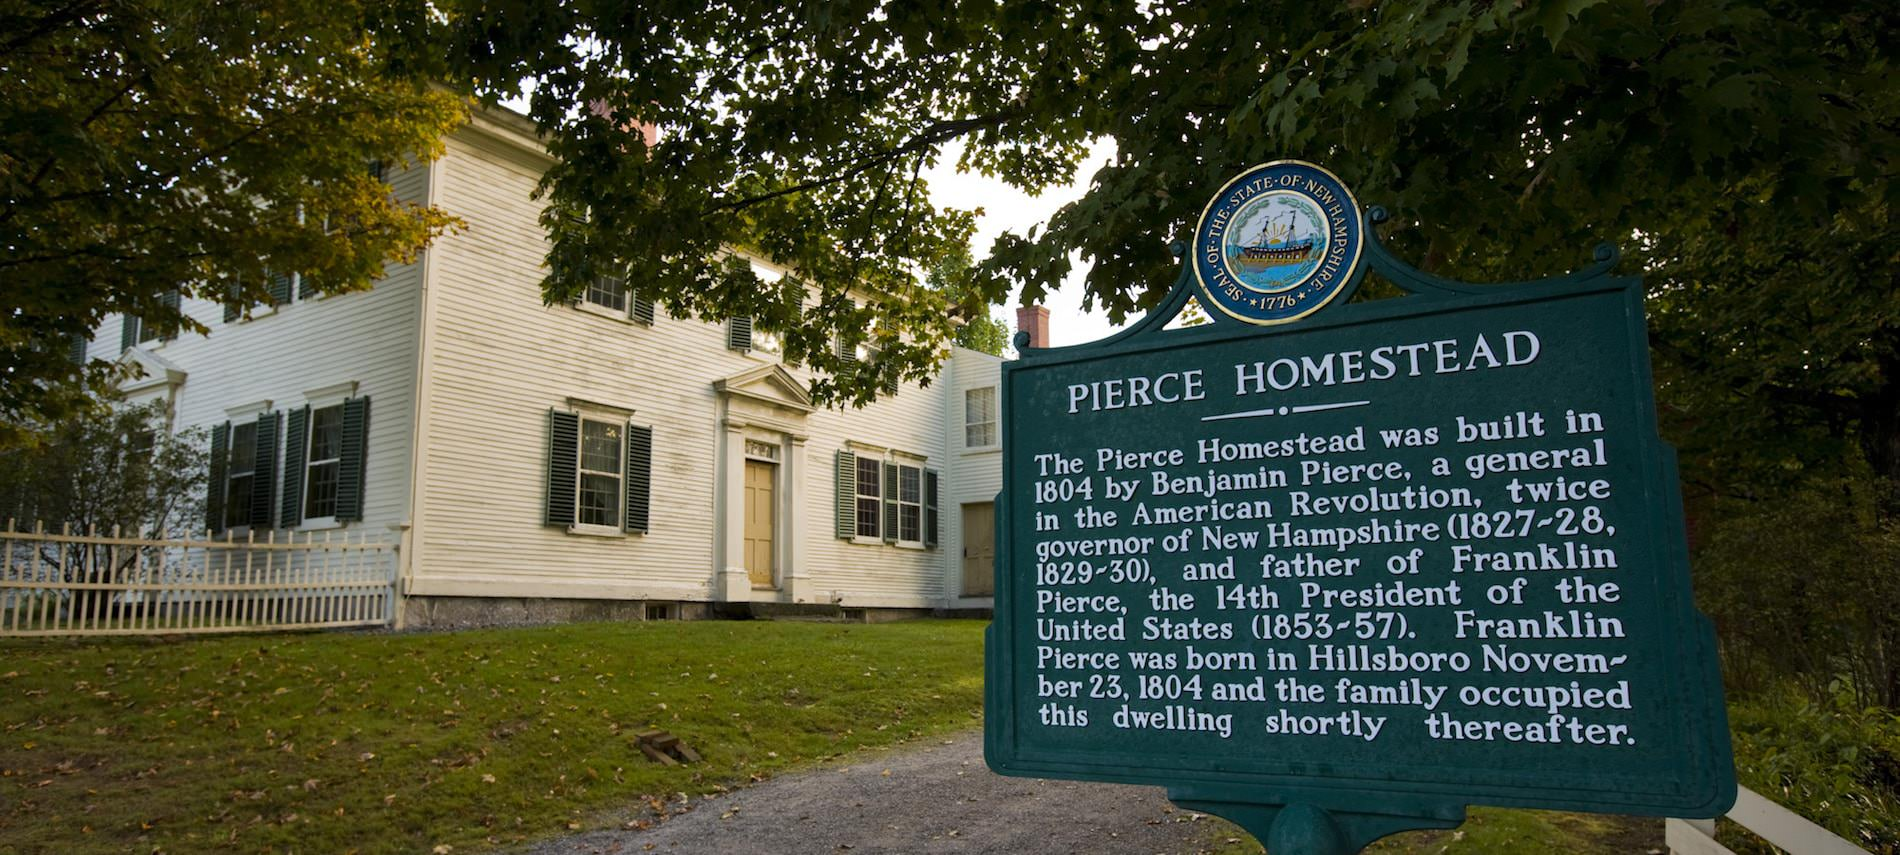 19th Century Benjamin Pierce homestead - side home and exterior sign